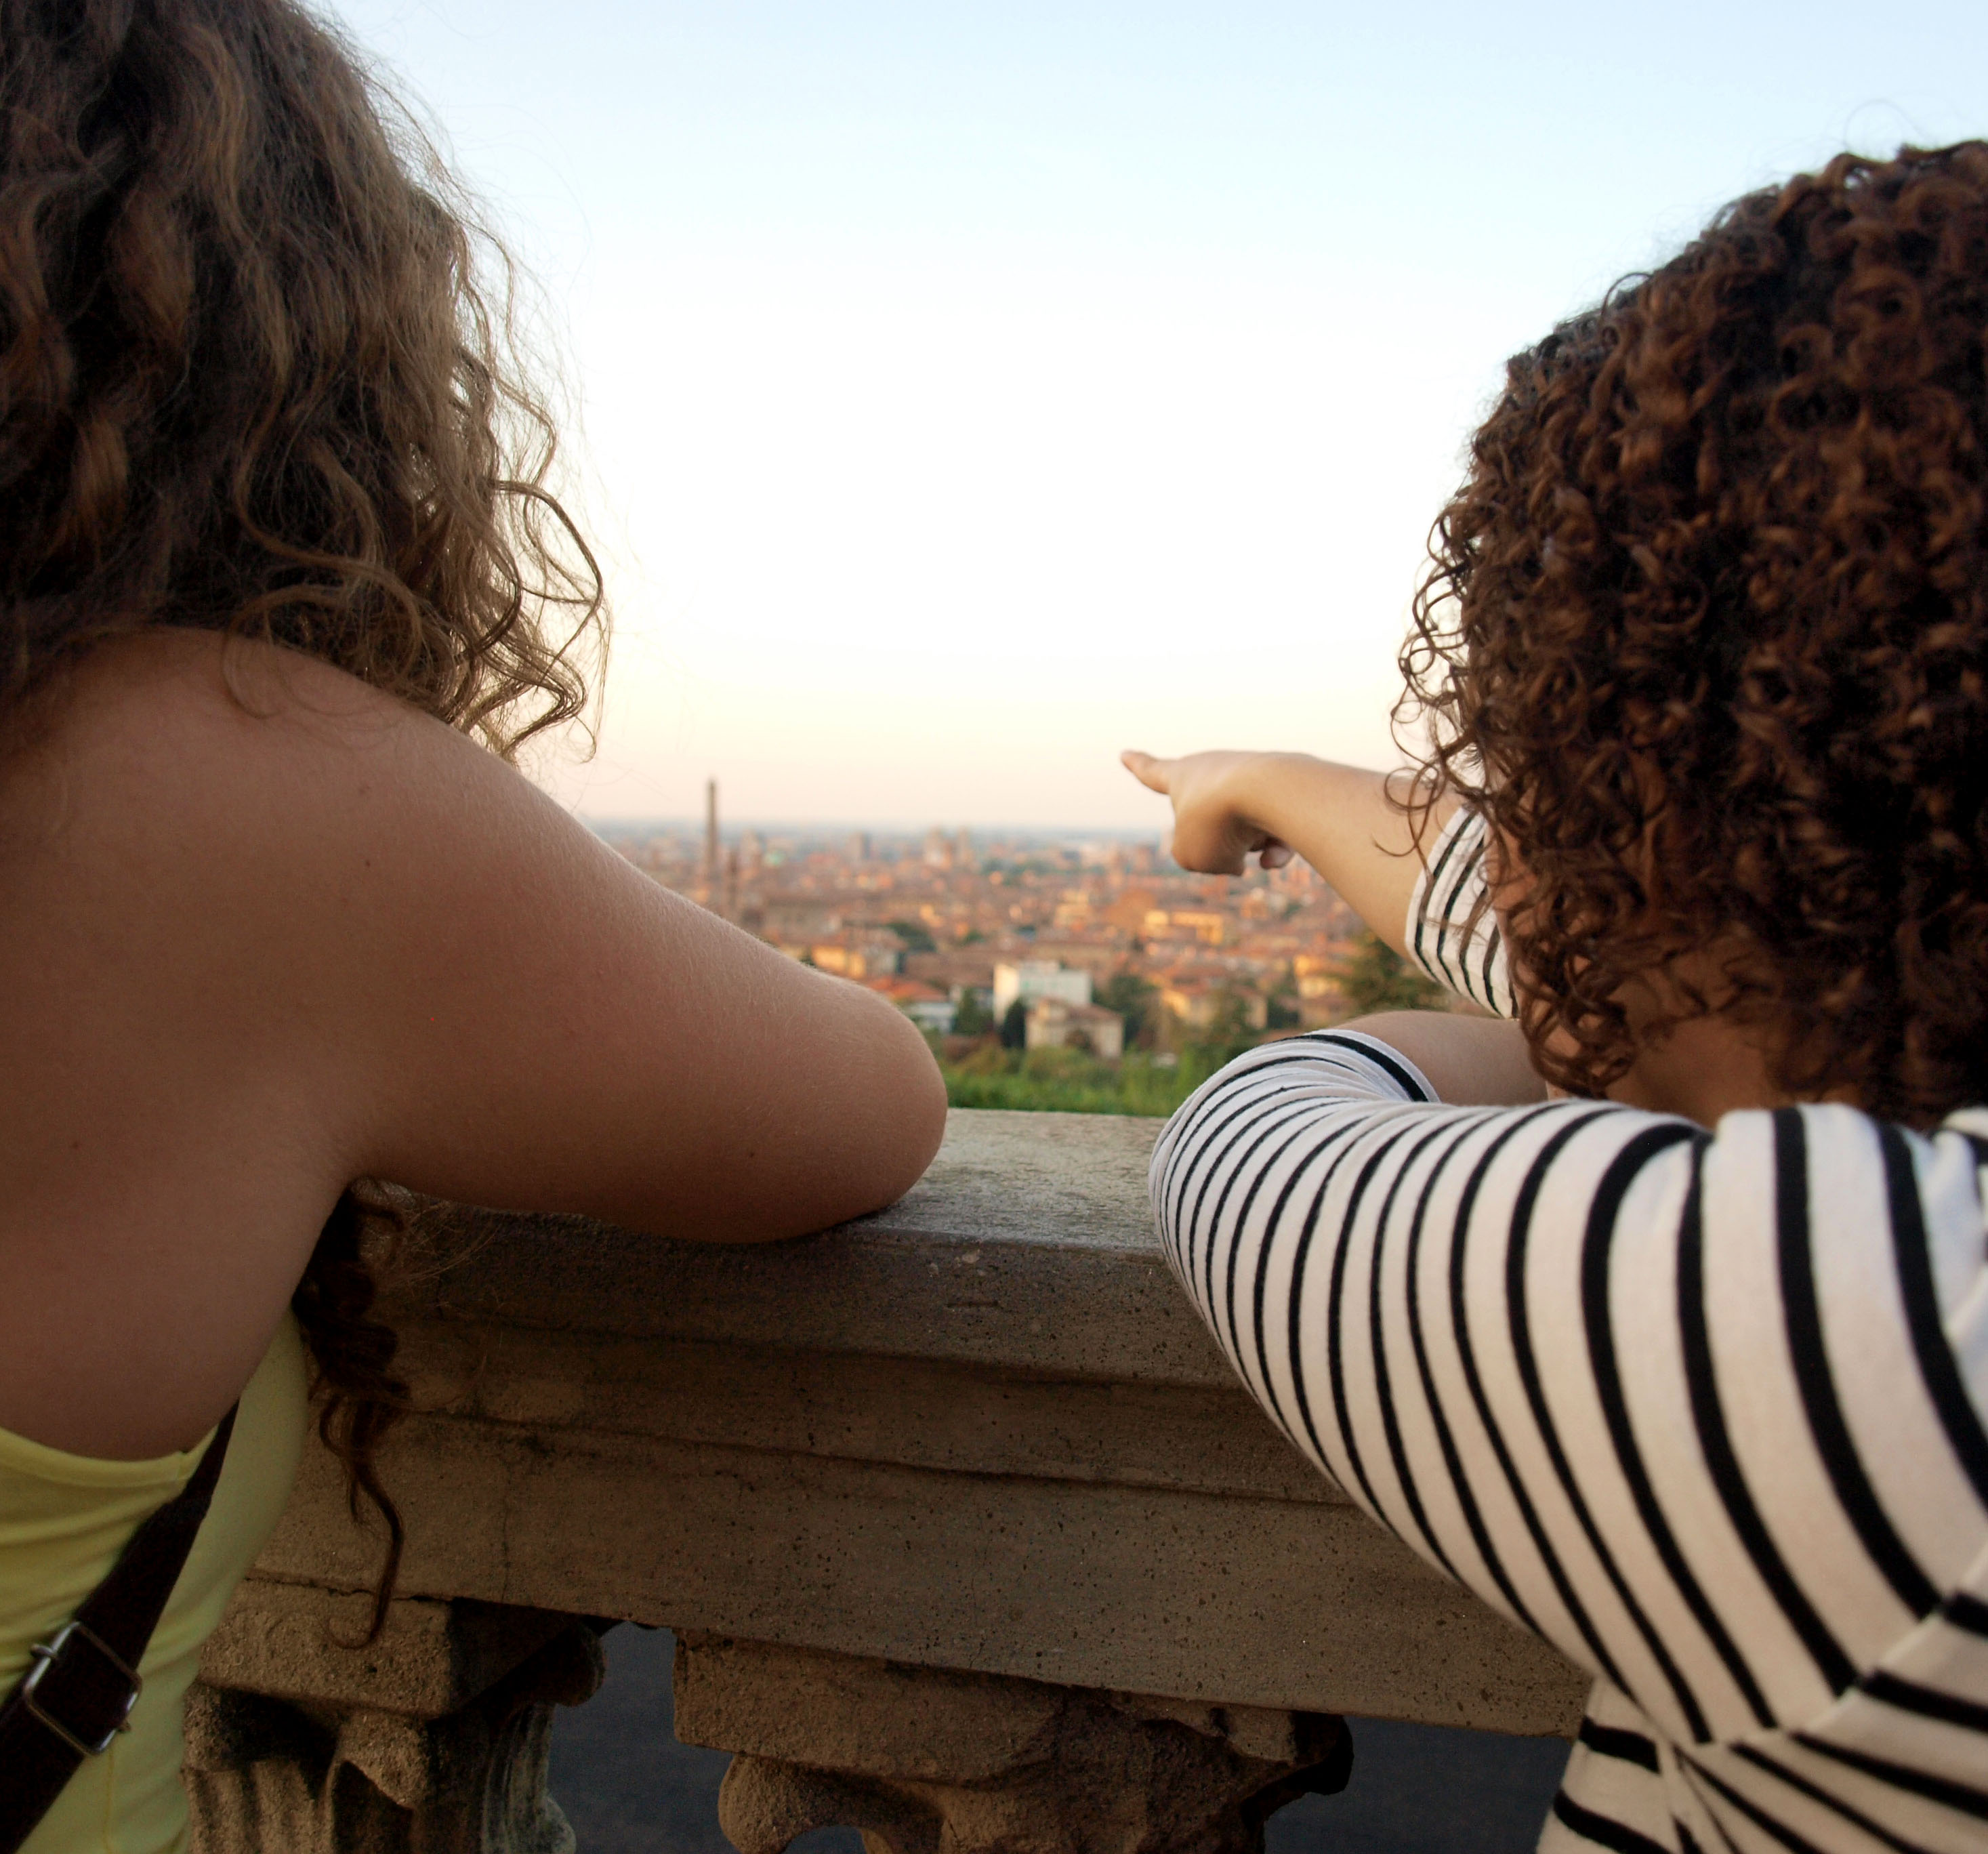 Students point out the iconic medieval tower of Bologna from a scenic viewpoint